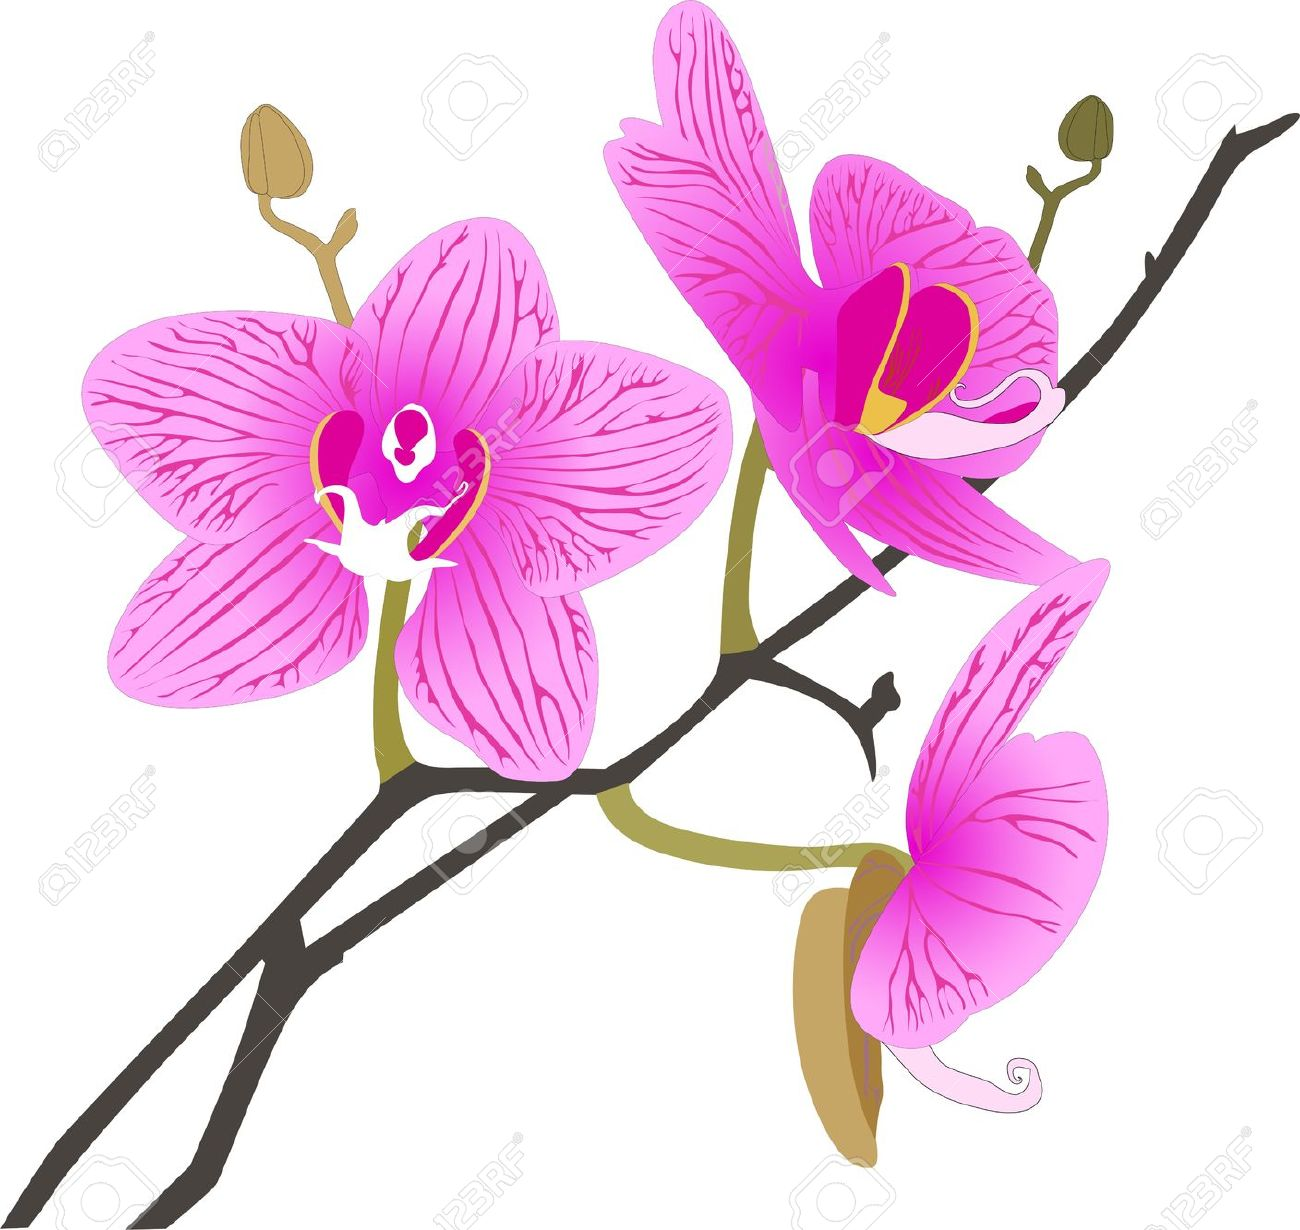 Orchid clipart #14, Download drawings